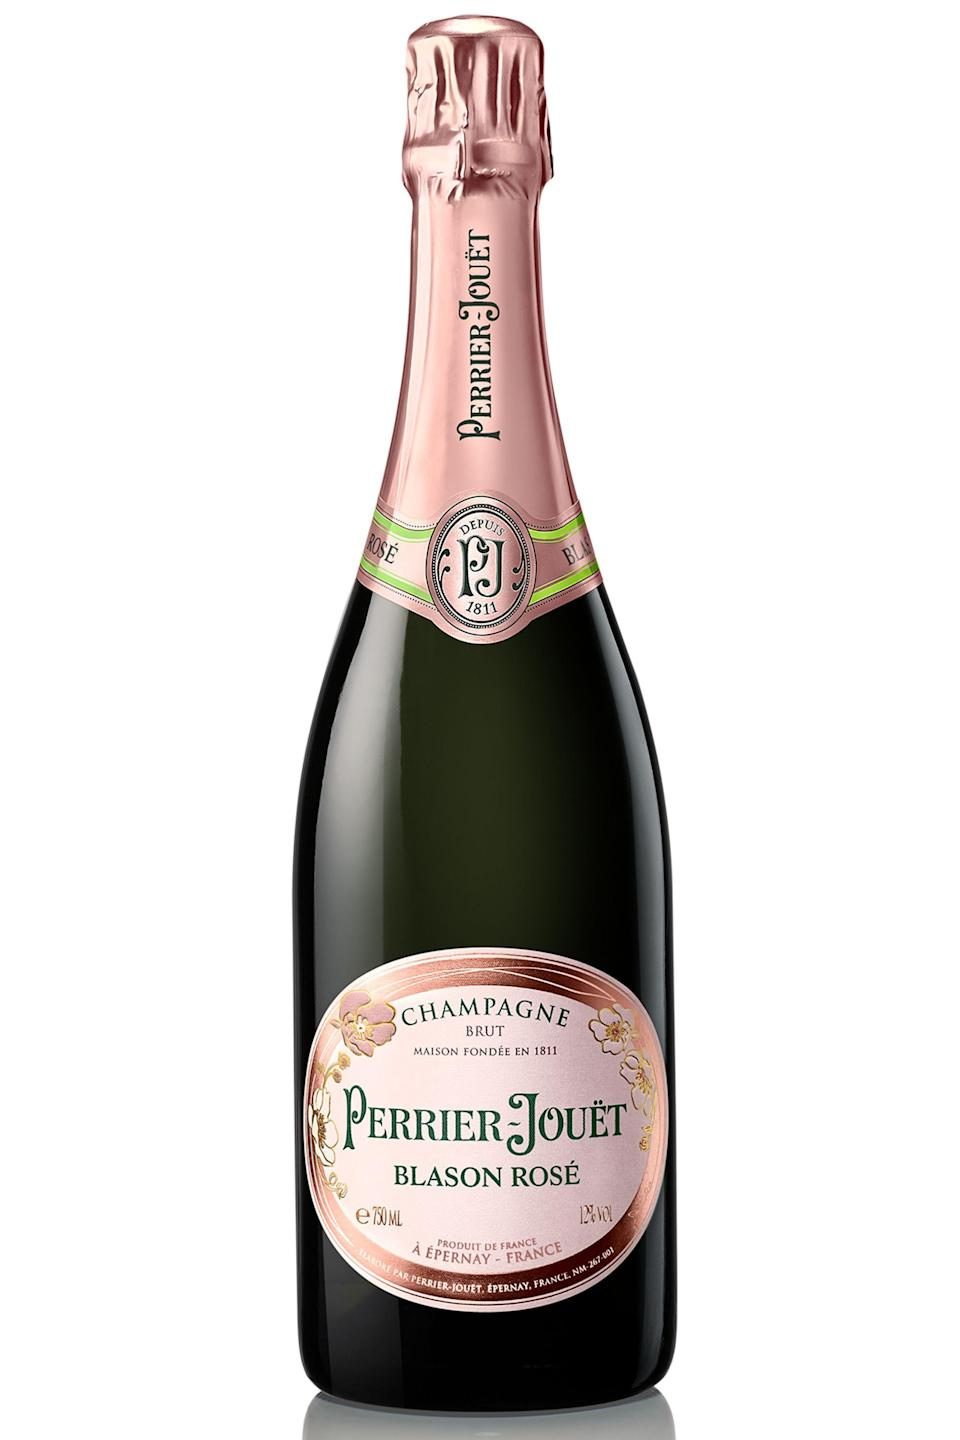 """<p><strong>Perrier-Jouet</strong></p><p>wine.com</p><p><strong>$78.99</strong></p><p><a href=""""https://go.redirectingat.com?id=74968X1596630&url=http%3A%2F%2Fwww.wine.com%2Fv6%2FPerrier-Jouet-Blason-Rose%2Fwine%2F110757%2FDetail.aspx&sref=https%3A%2F%2Fwww.townandcountrymag.com%2Fleisure%2Fdrinks%2Fnews%2Fg1319%2Fbest-rose-brands%2F"""" rel=""""nofollow noopener"""" target=""""_blank"""" data-ylk=""""slk:Shop Now"""" class=""""link rapid-noclick-resp"""">Shop Now</a></p><p>Just what you need to pair with some ice cold oysters, this nicely rounded champagne brings tart strawberry and raspberry notes with a mineral finish that will remind you of rosé's elegant side. </p>"""